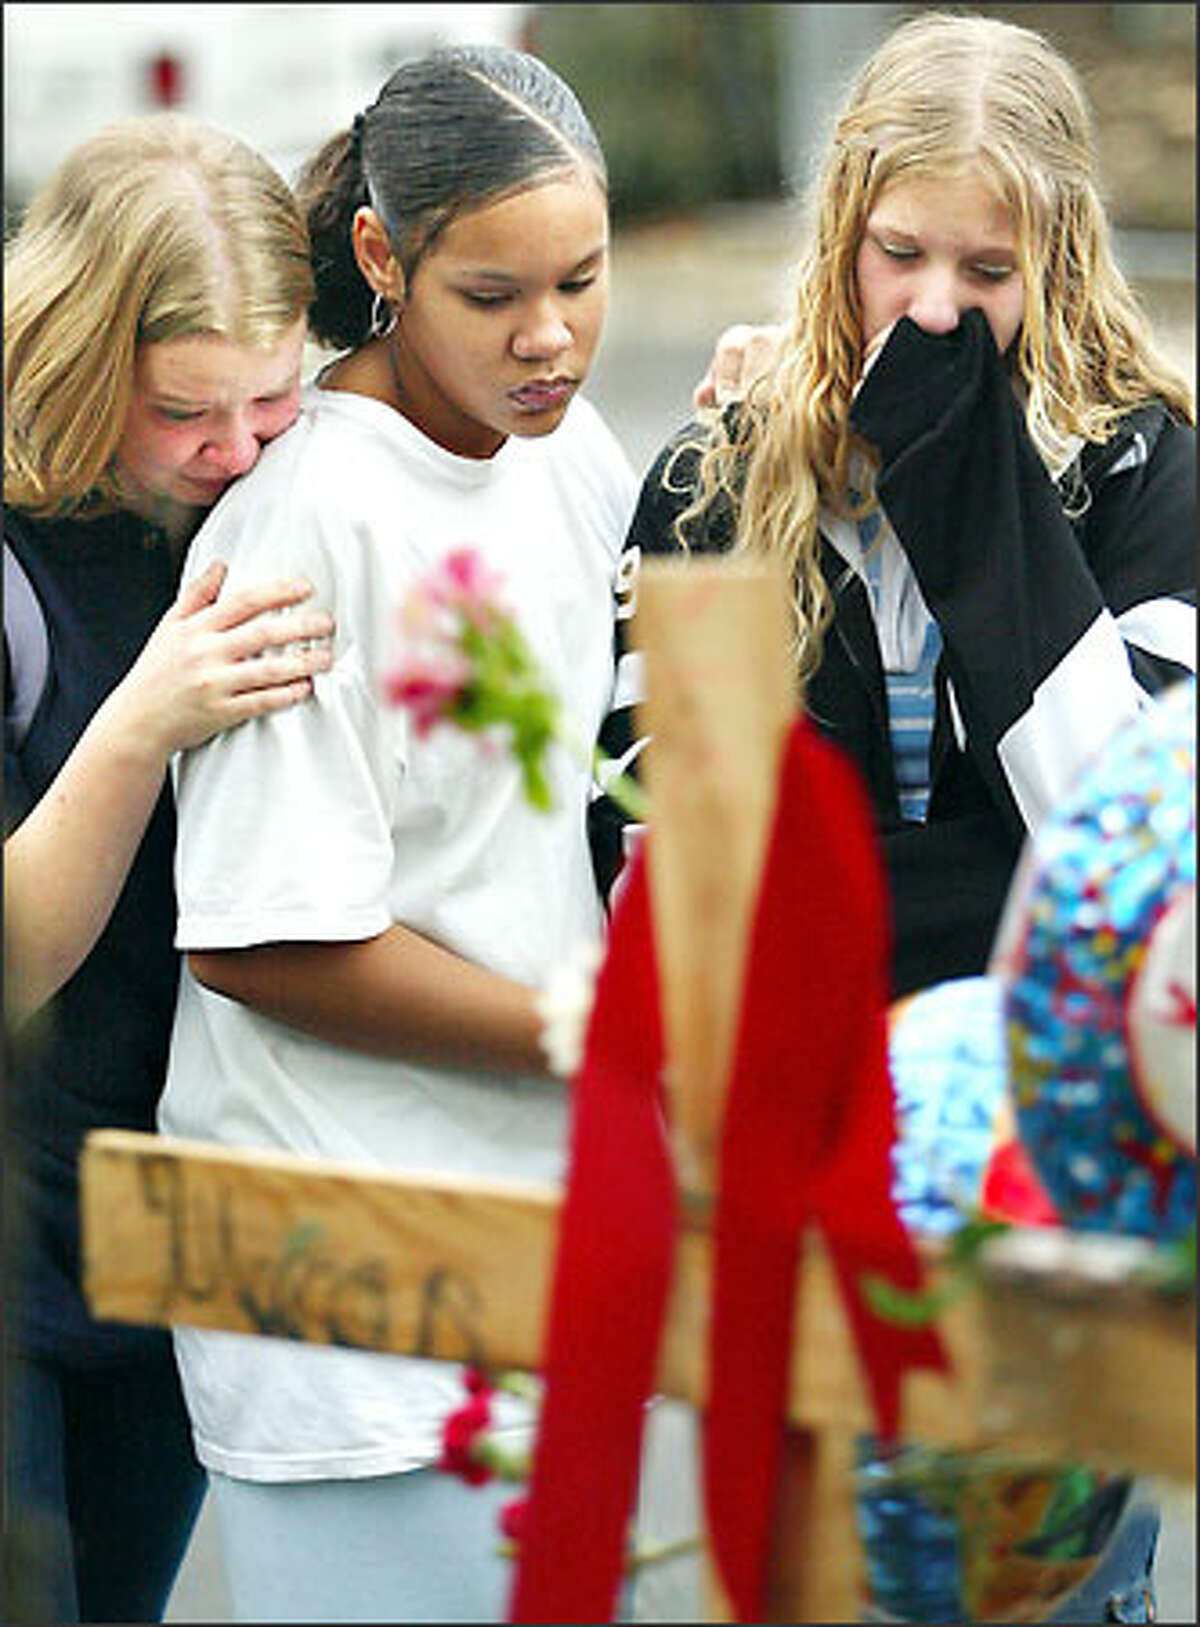 Marcus Morgan's friends and schoolmates Erika Carlson, Christina Figueroa and Katie Closson, left to right, mourn at a memorial in his honor in Lakewood. Morgan was killed by a bus while walking to Mann Middle School Monday.